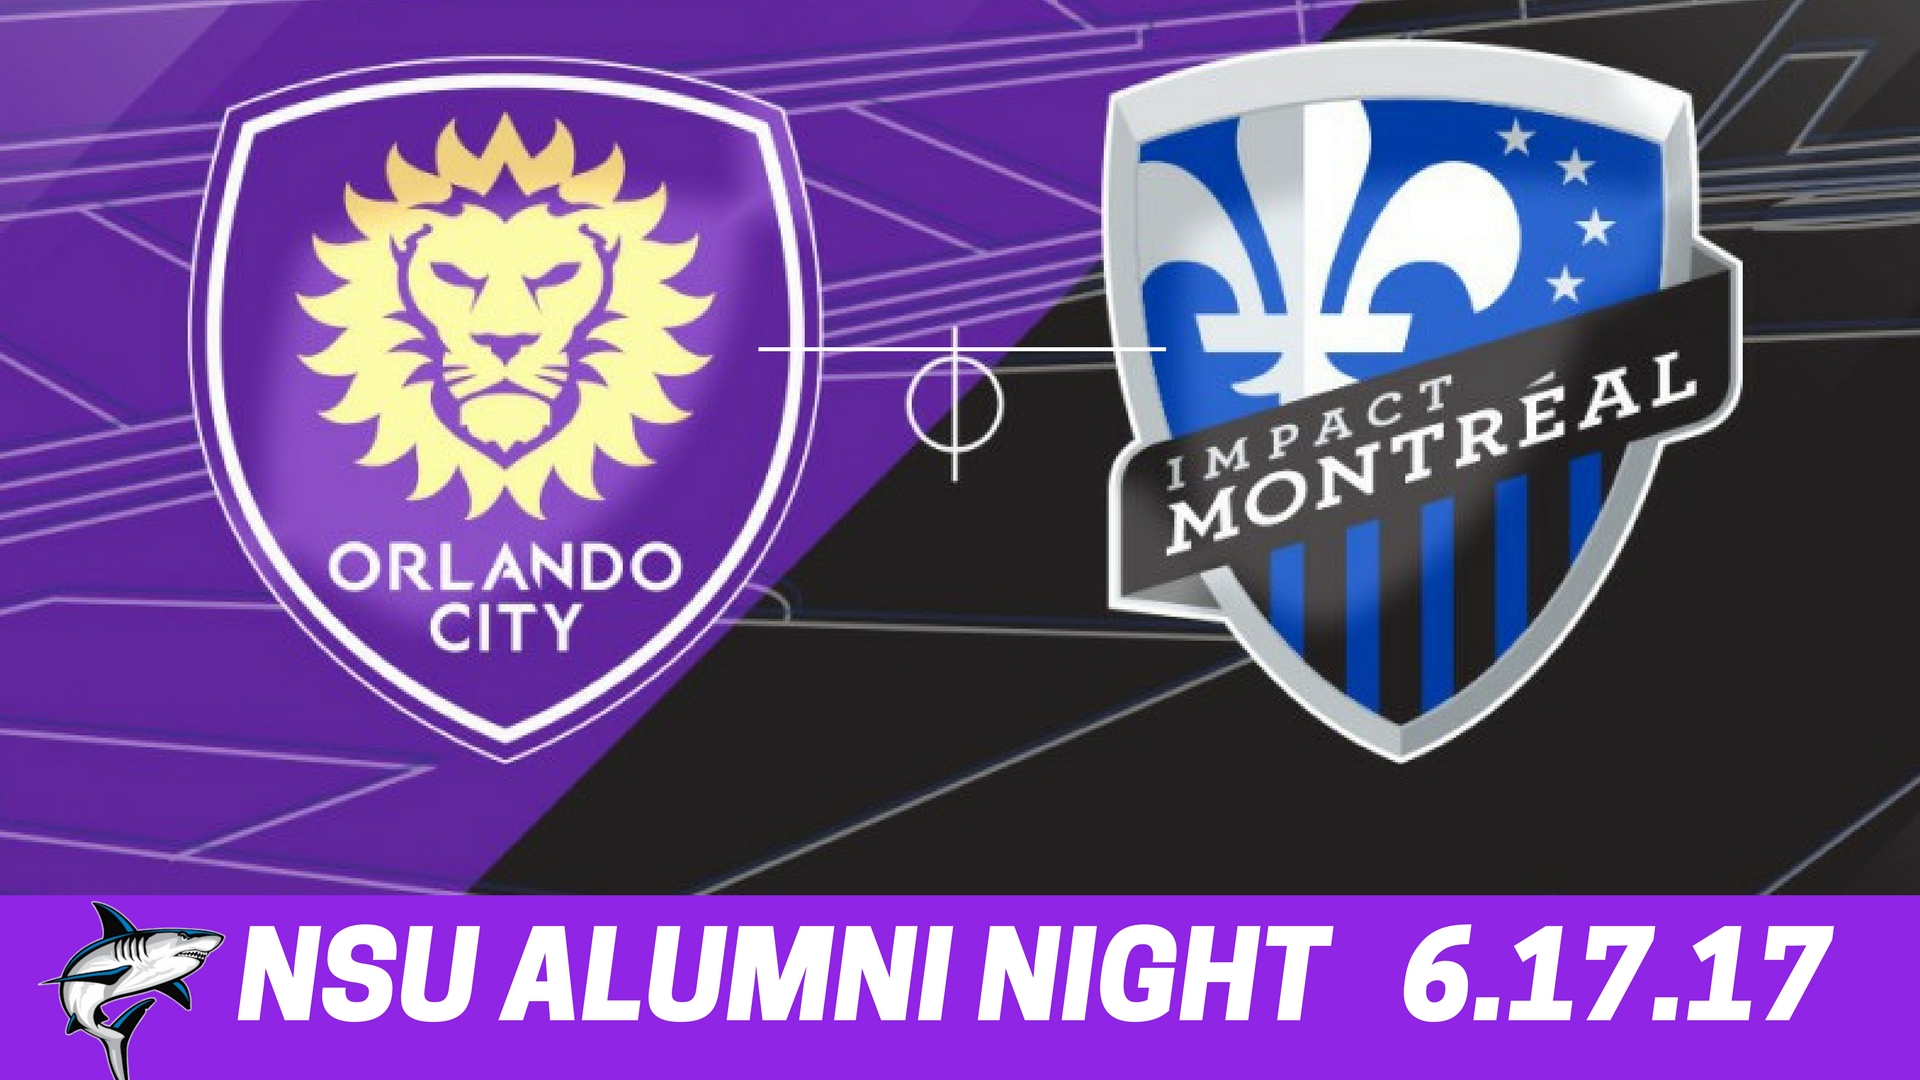 NSU Alumni Night with Orlando City Soccer Club